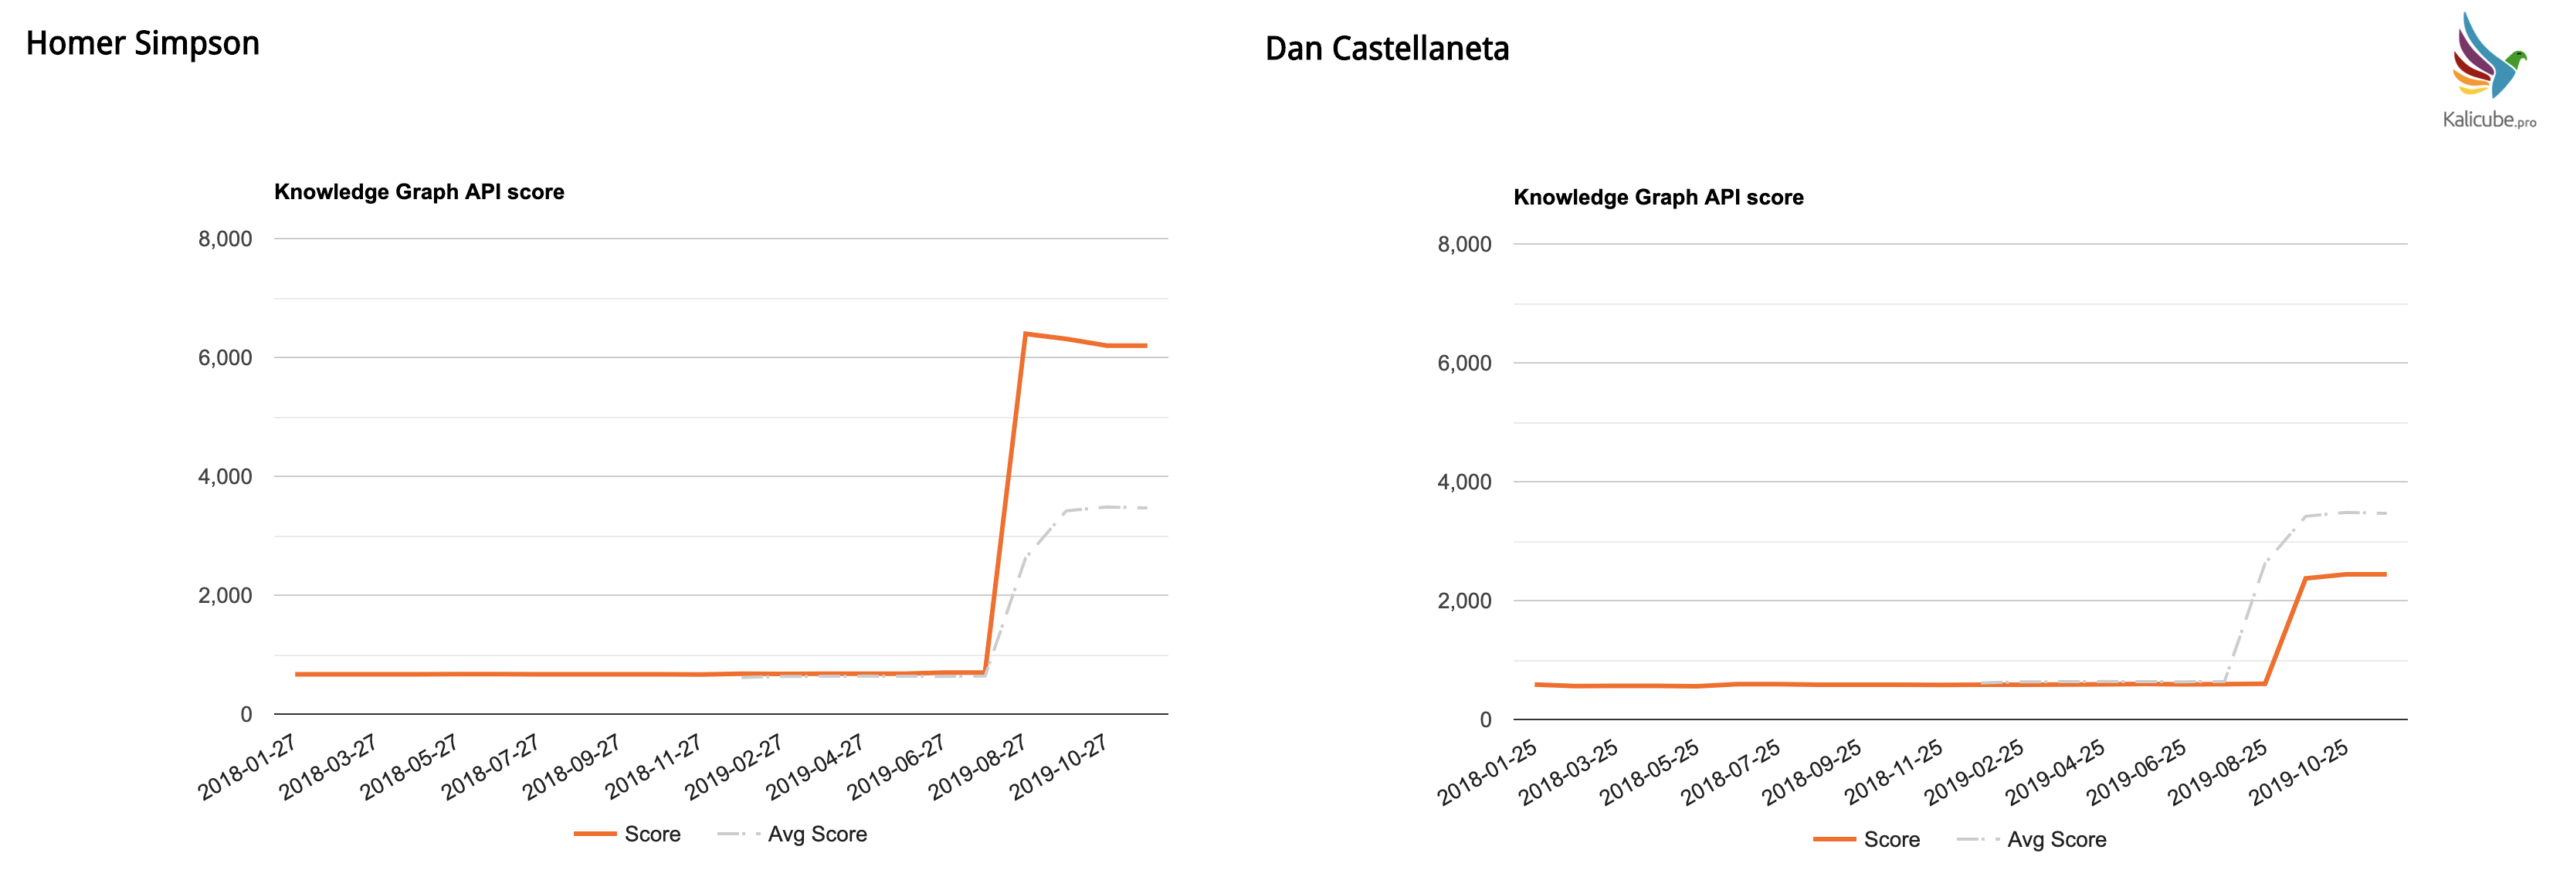 Knowledge Graph Algorithm Update Summer 2019 (a.k.a. Budapest)